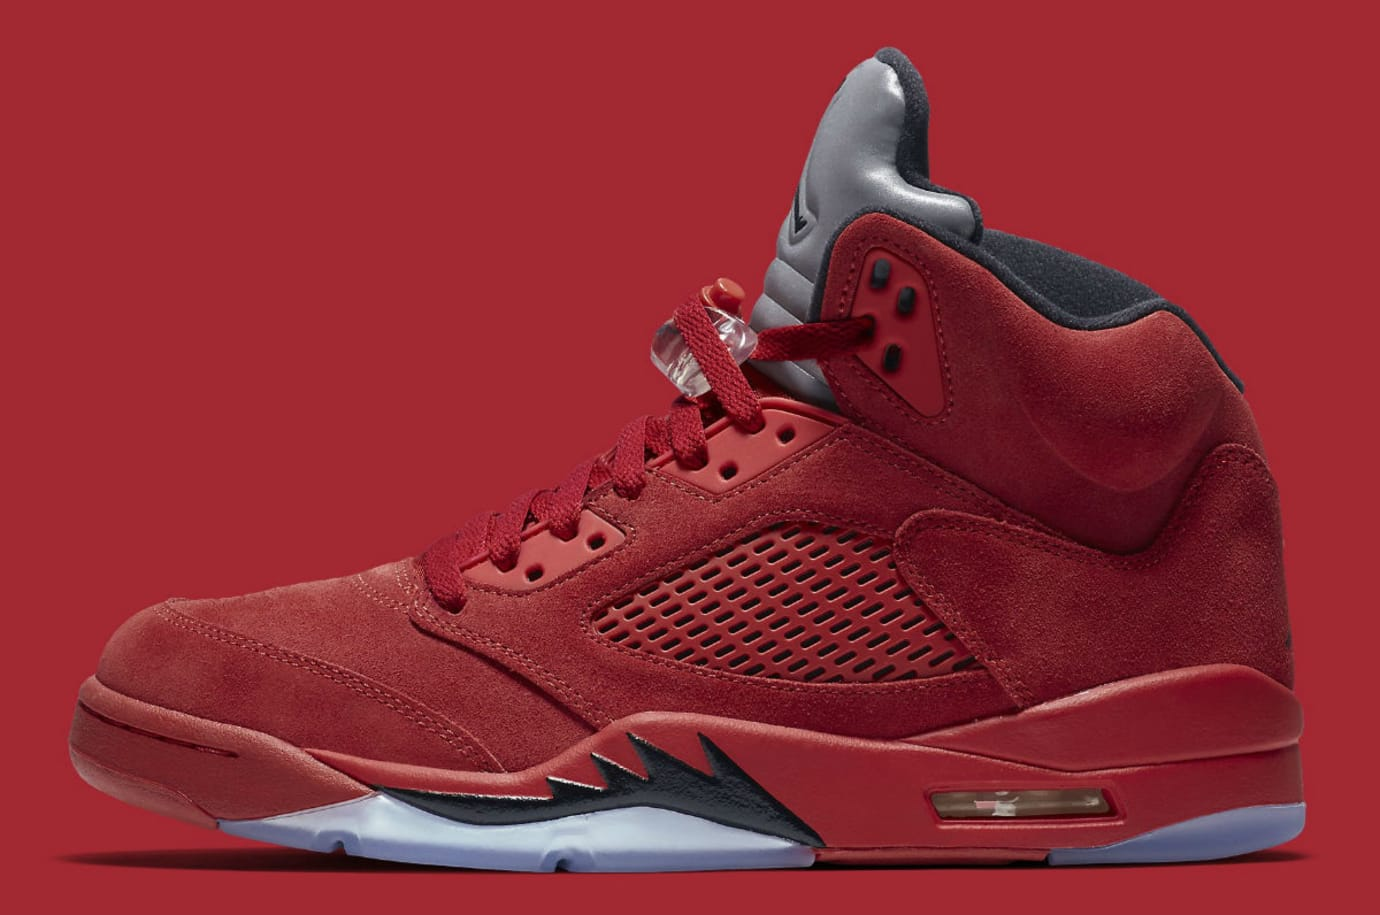 Air Jordan 5 Red Suede Release Date Profile 136027-602